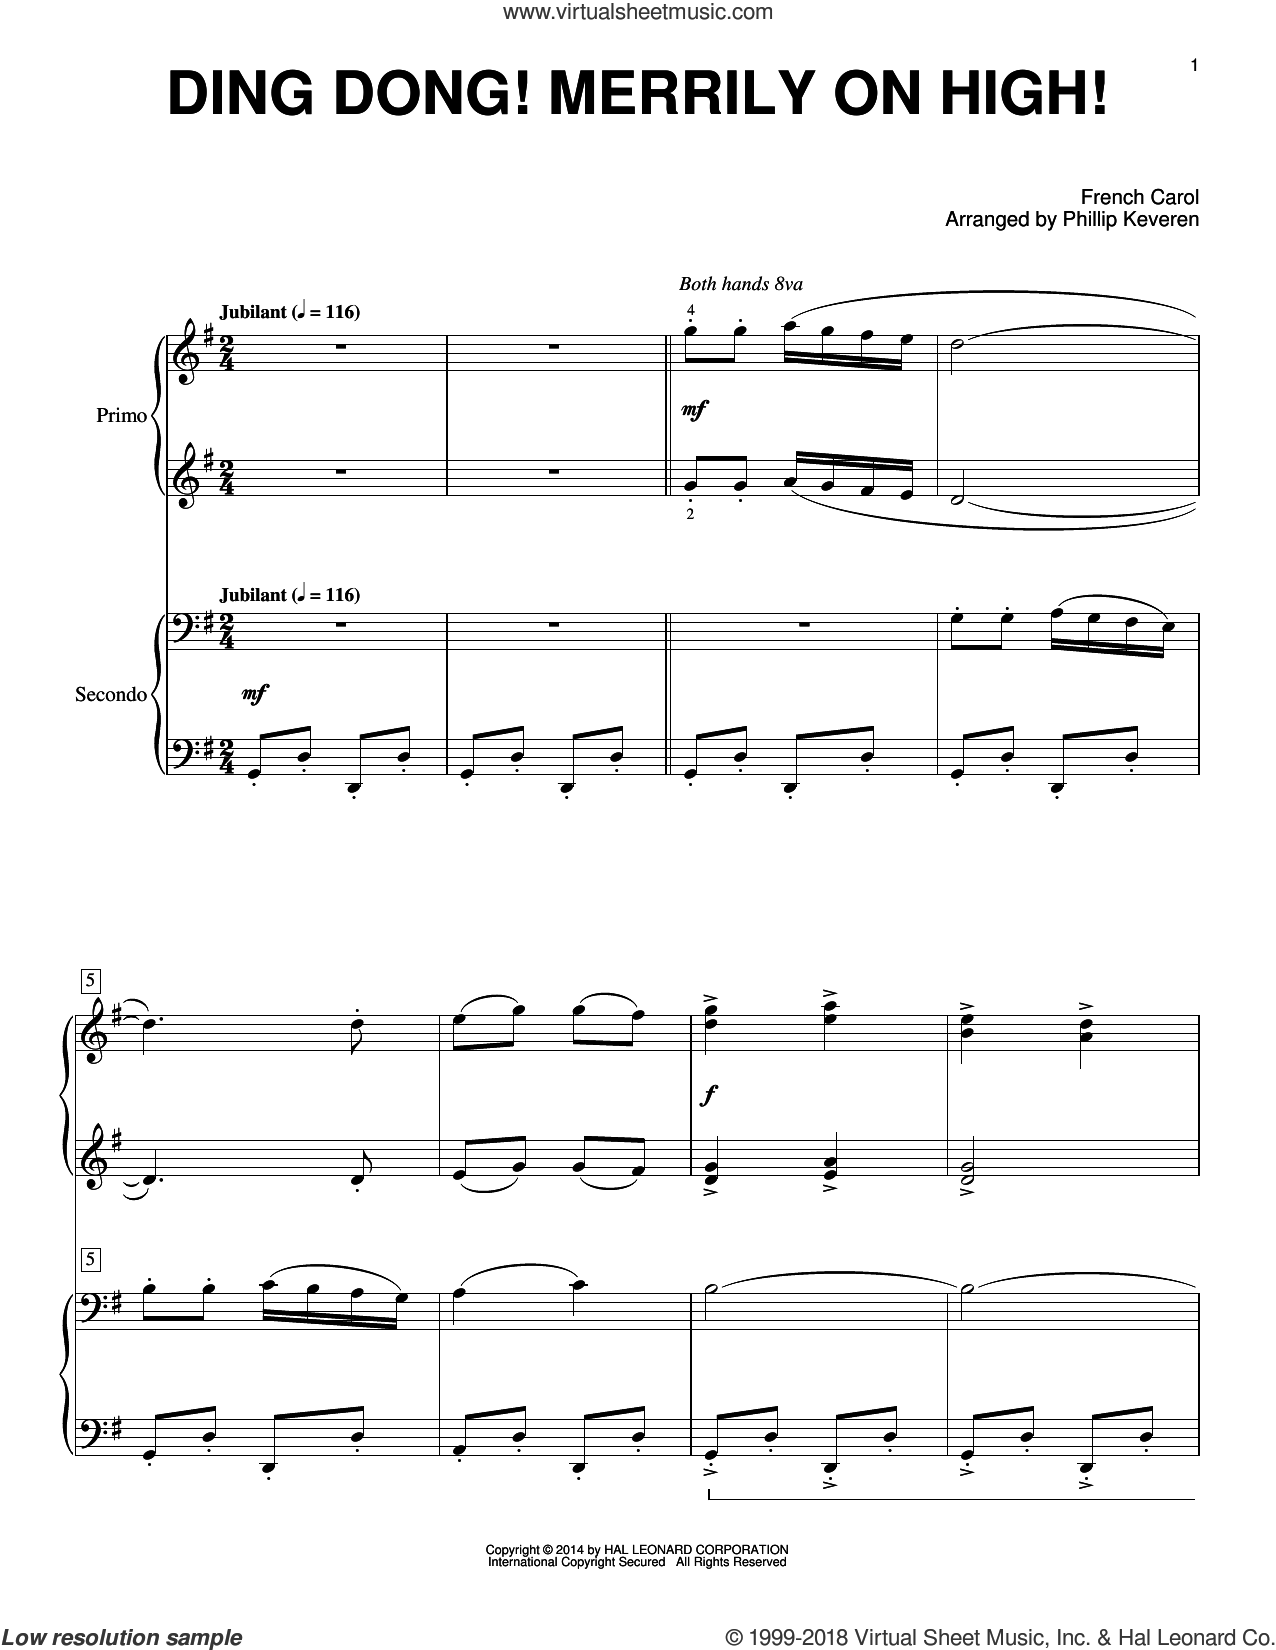 Ding Dong! Merrily On High! sheet music for piano four hands (duets) by Phillip Keveren